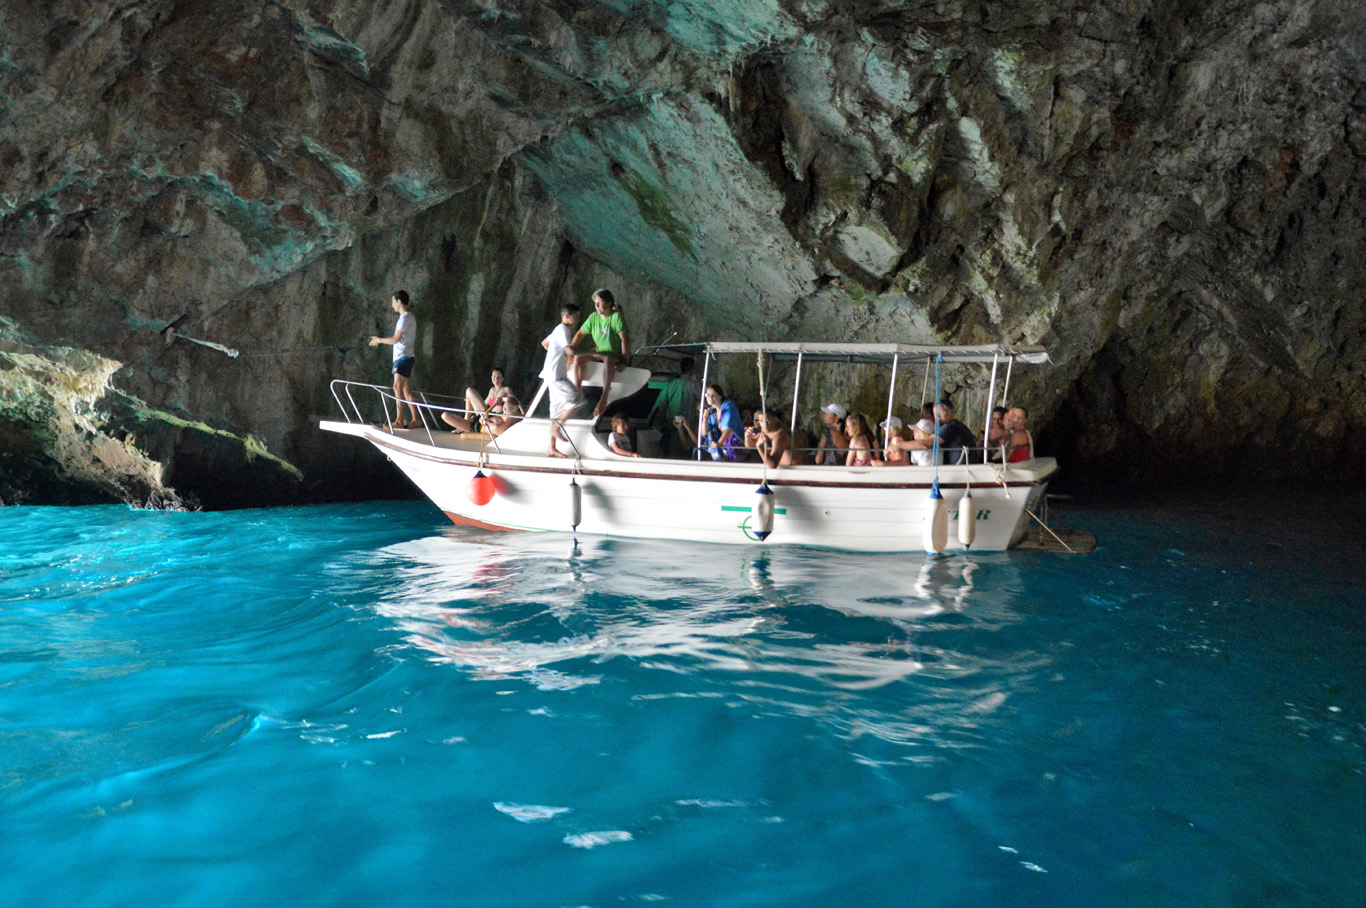 A boat in the Blue Cave